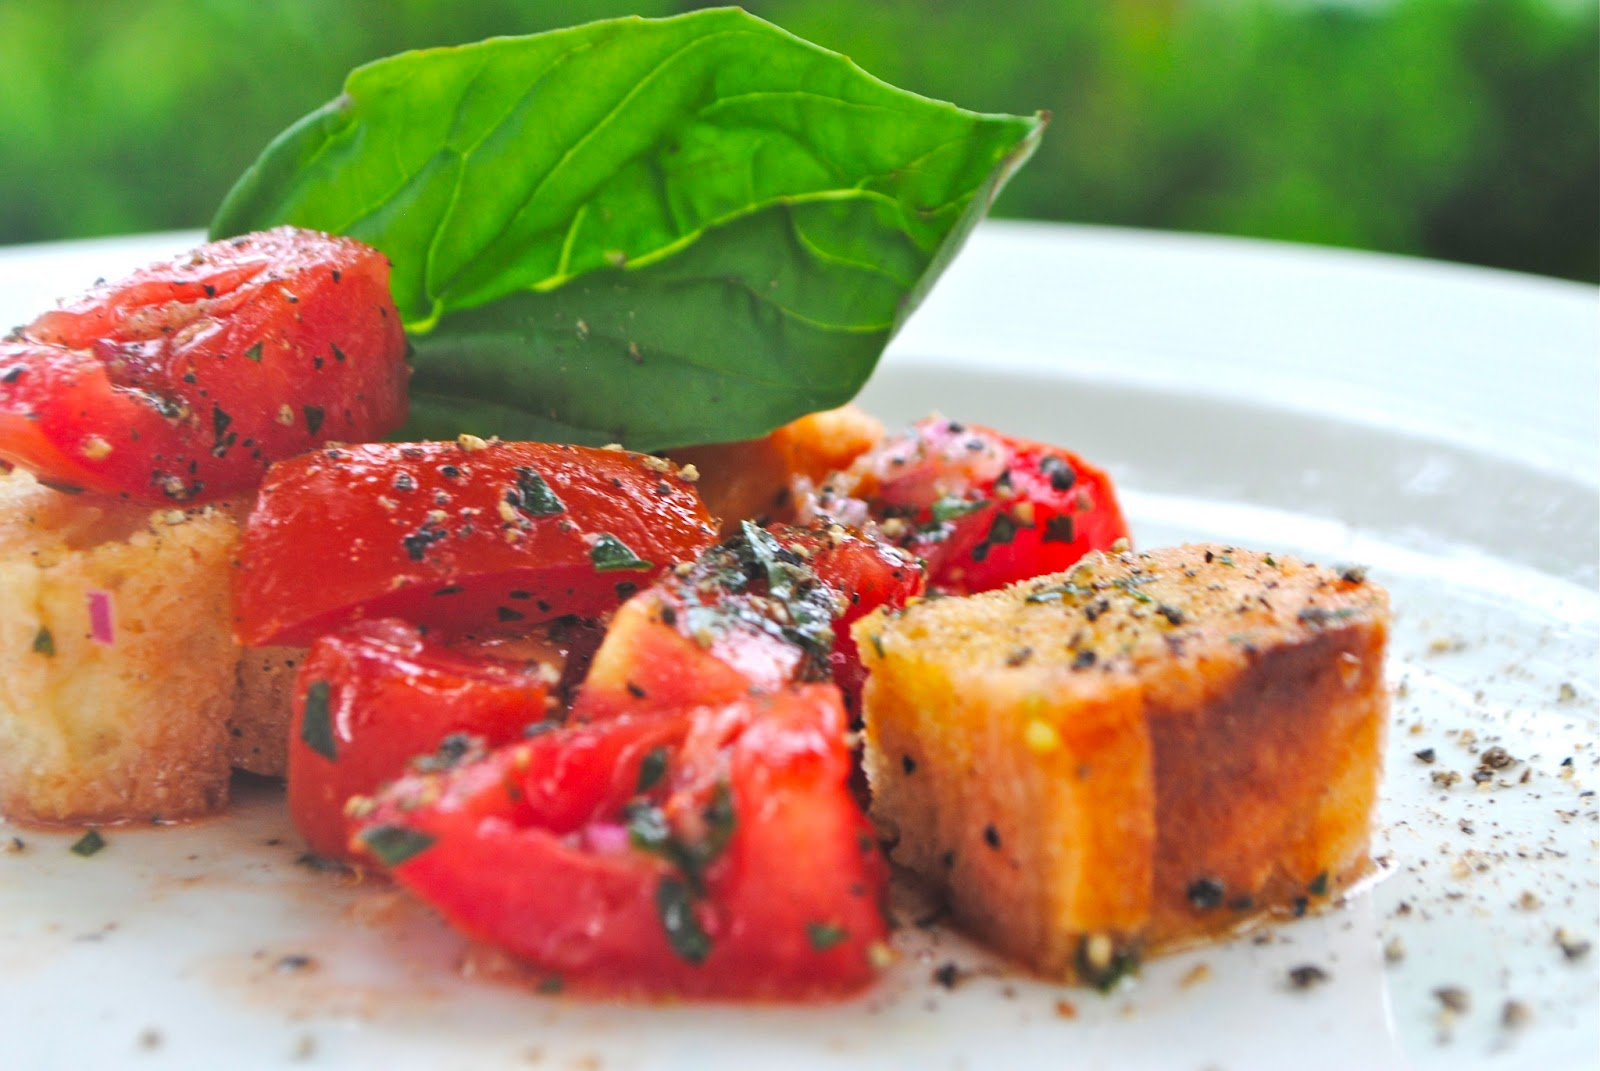 tomatoes, cut into cubes